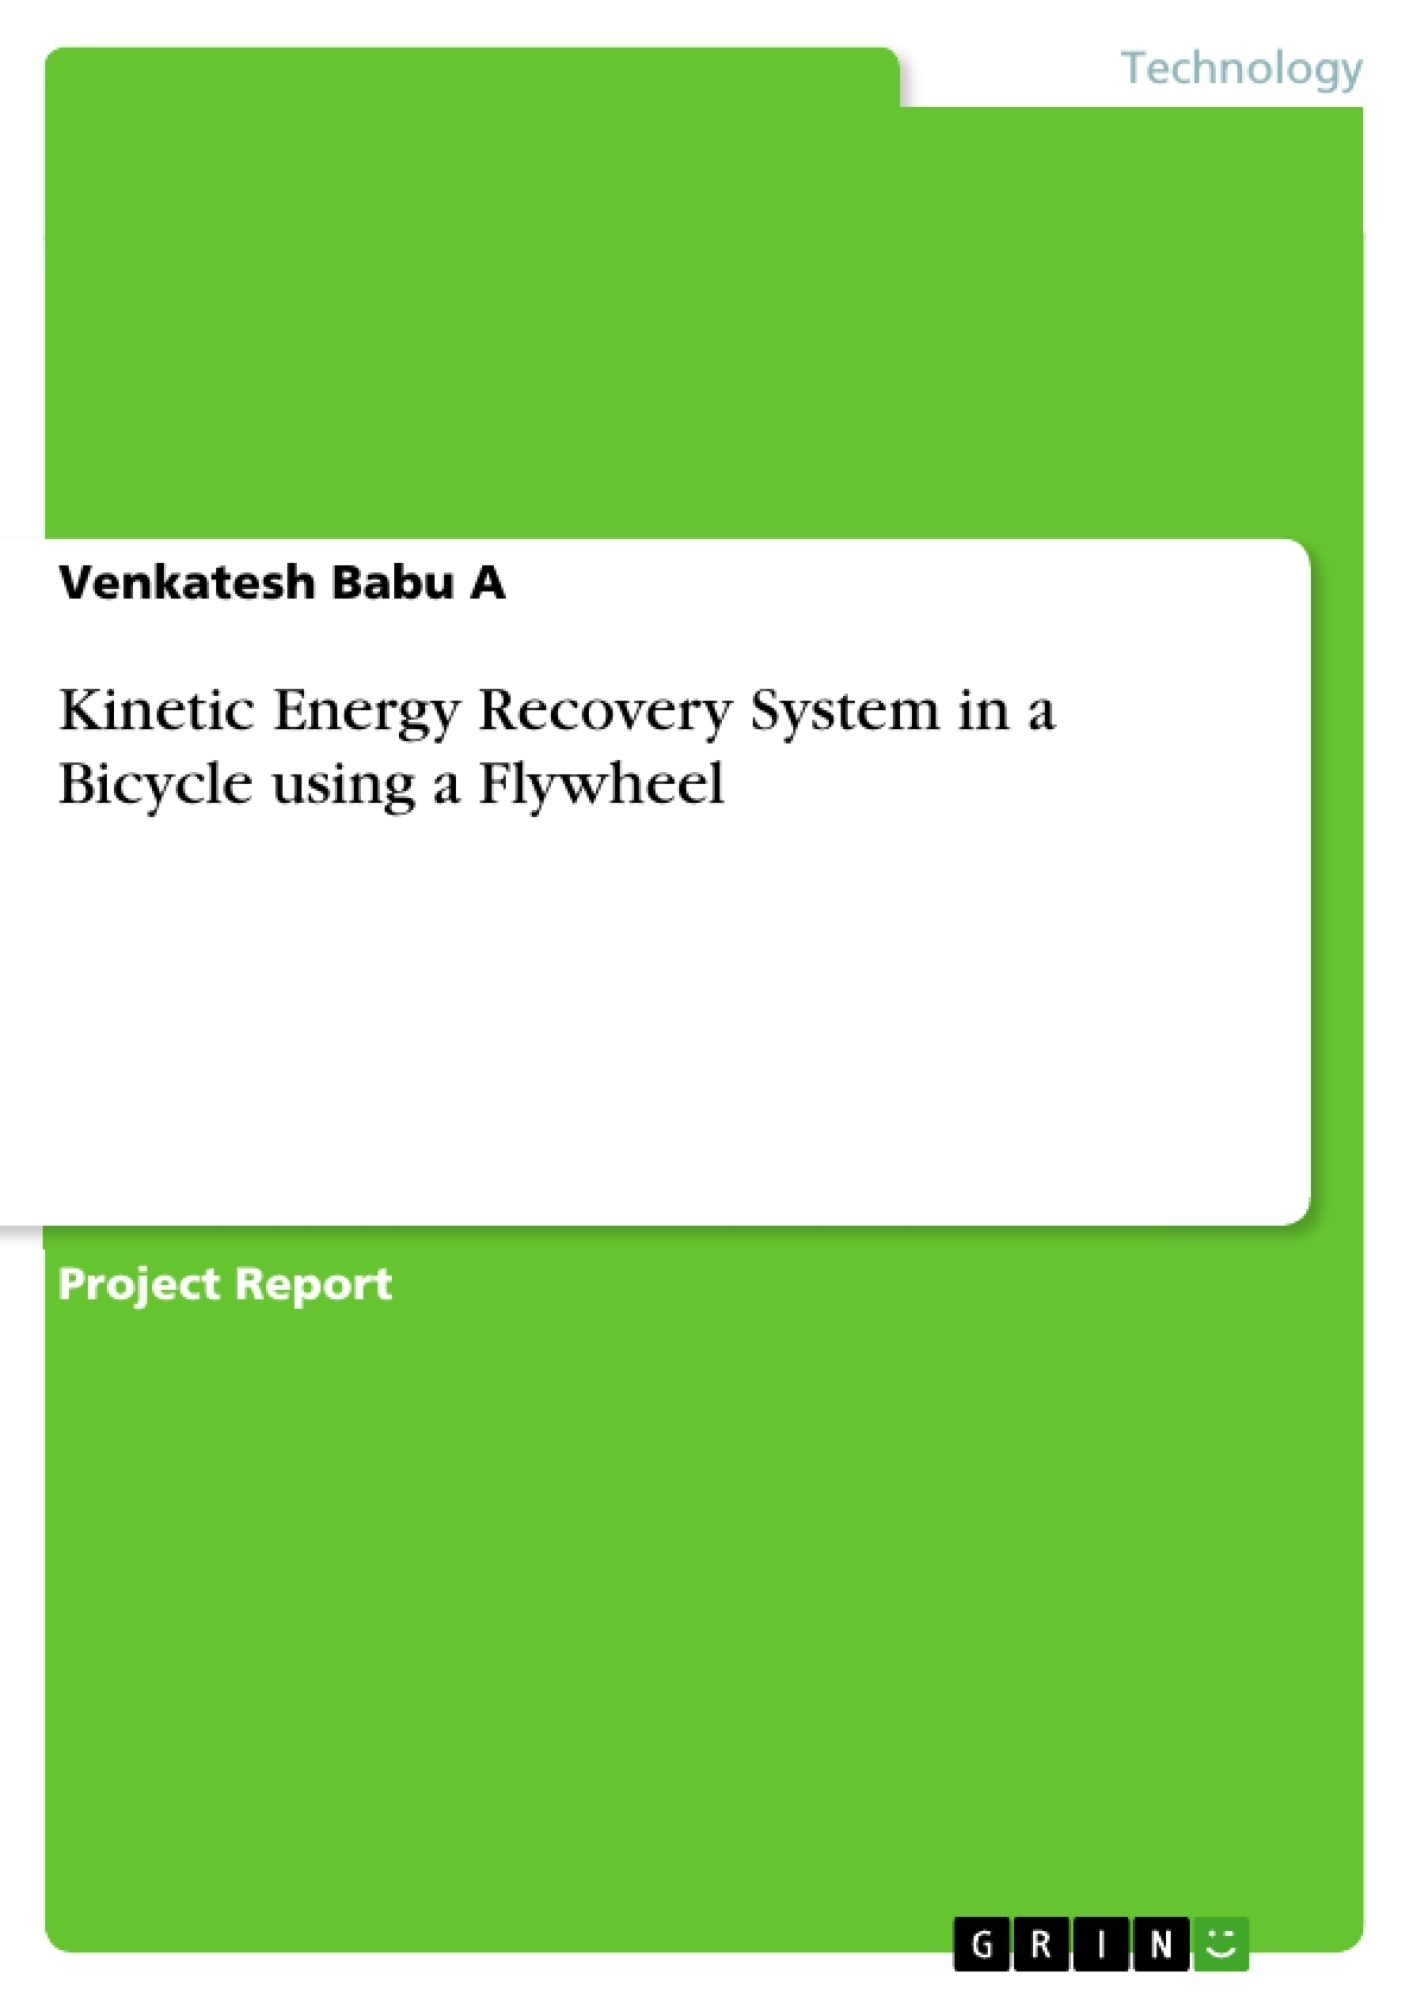 Title: Kinetic Energy Recovery System in a Bicycle using a Flywheel